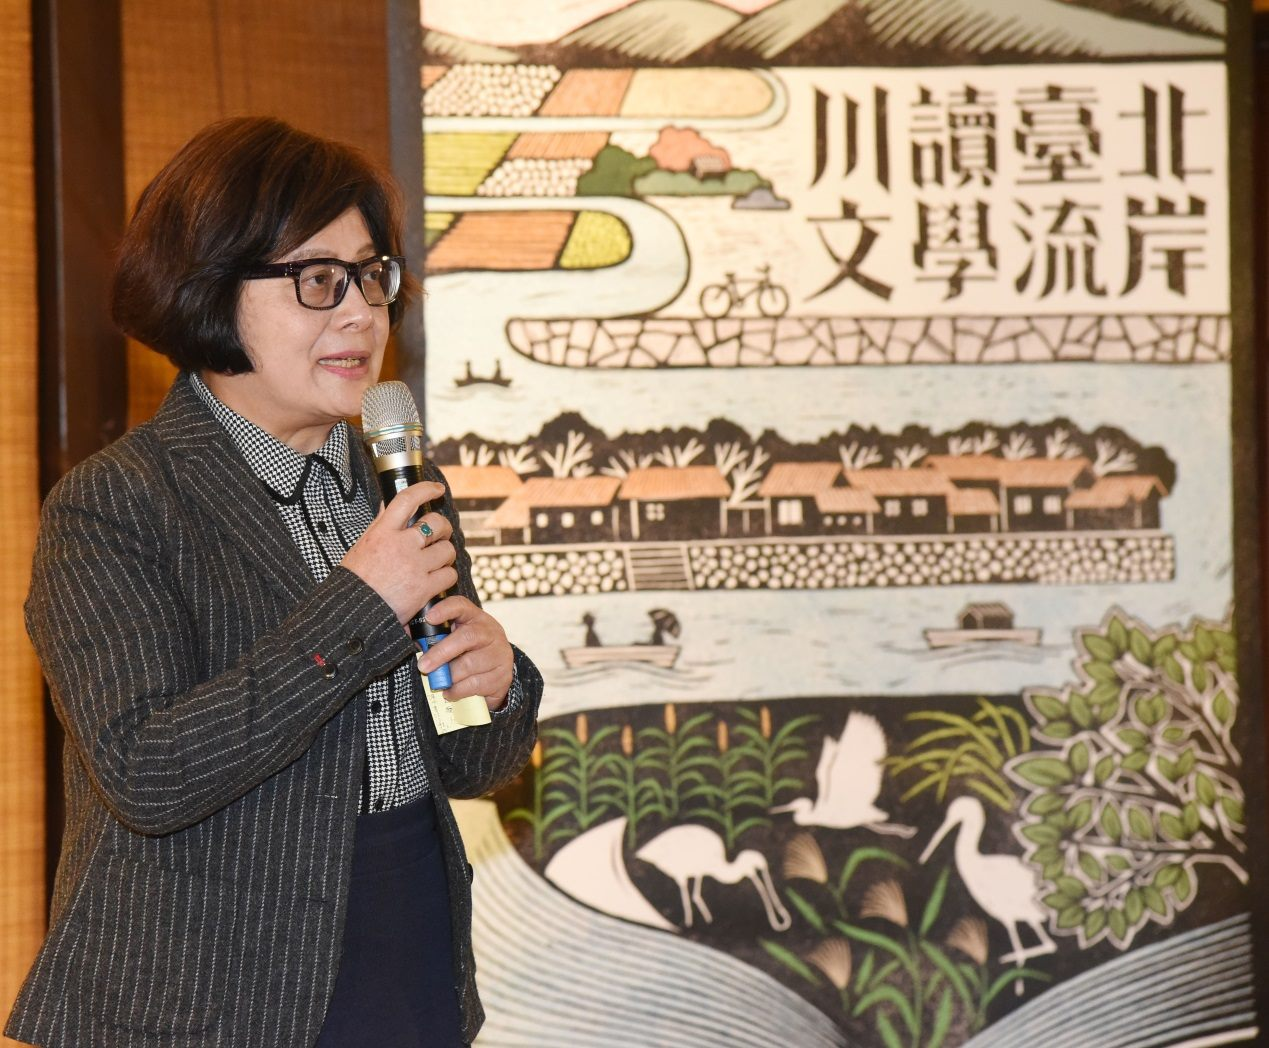 Feng De-bing, Chairwoman of Wen-Hsun Magazine and Taipei Literature Festival curator.